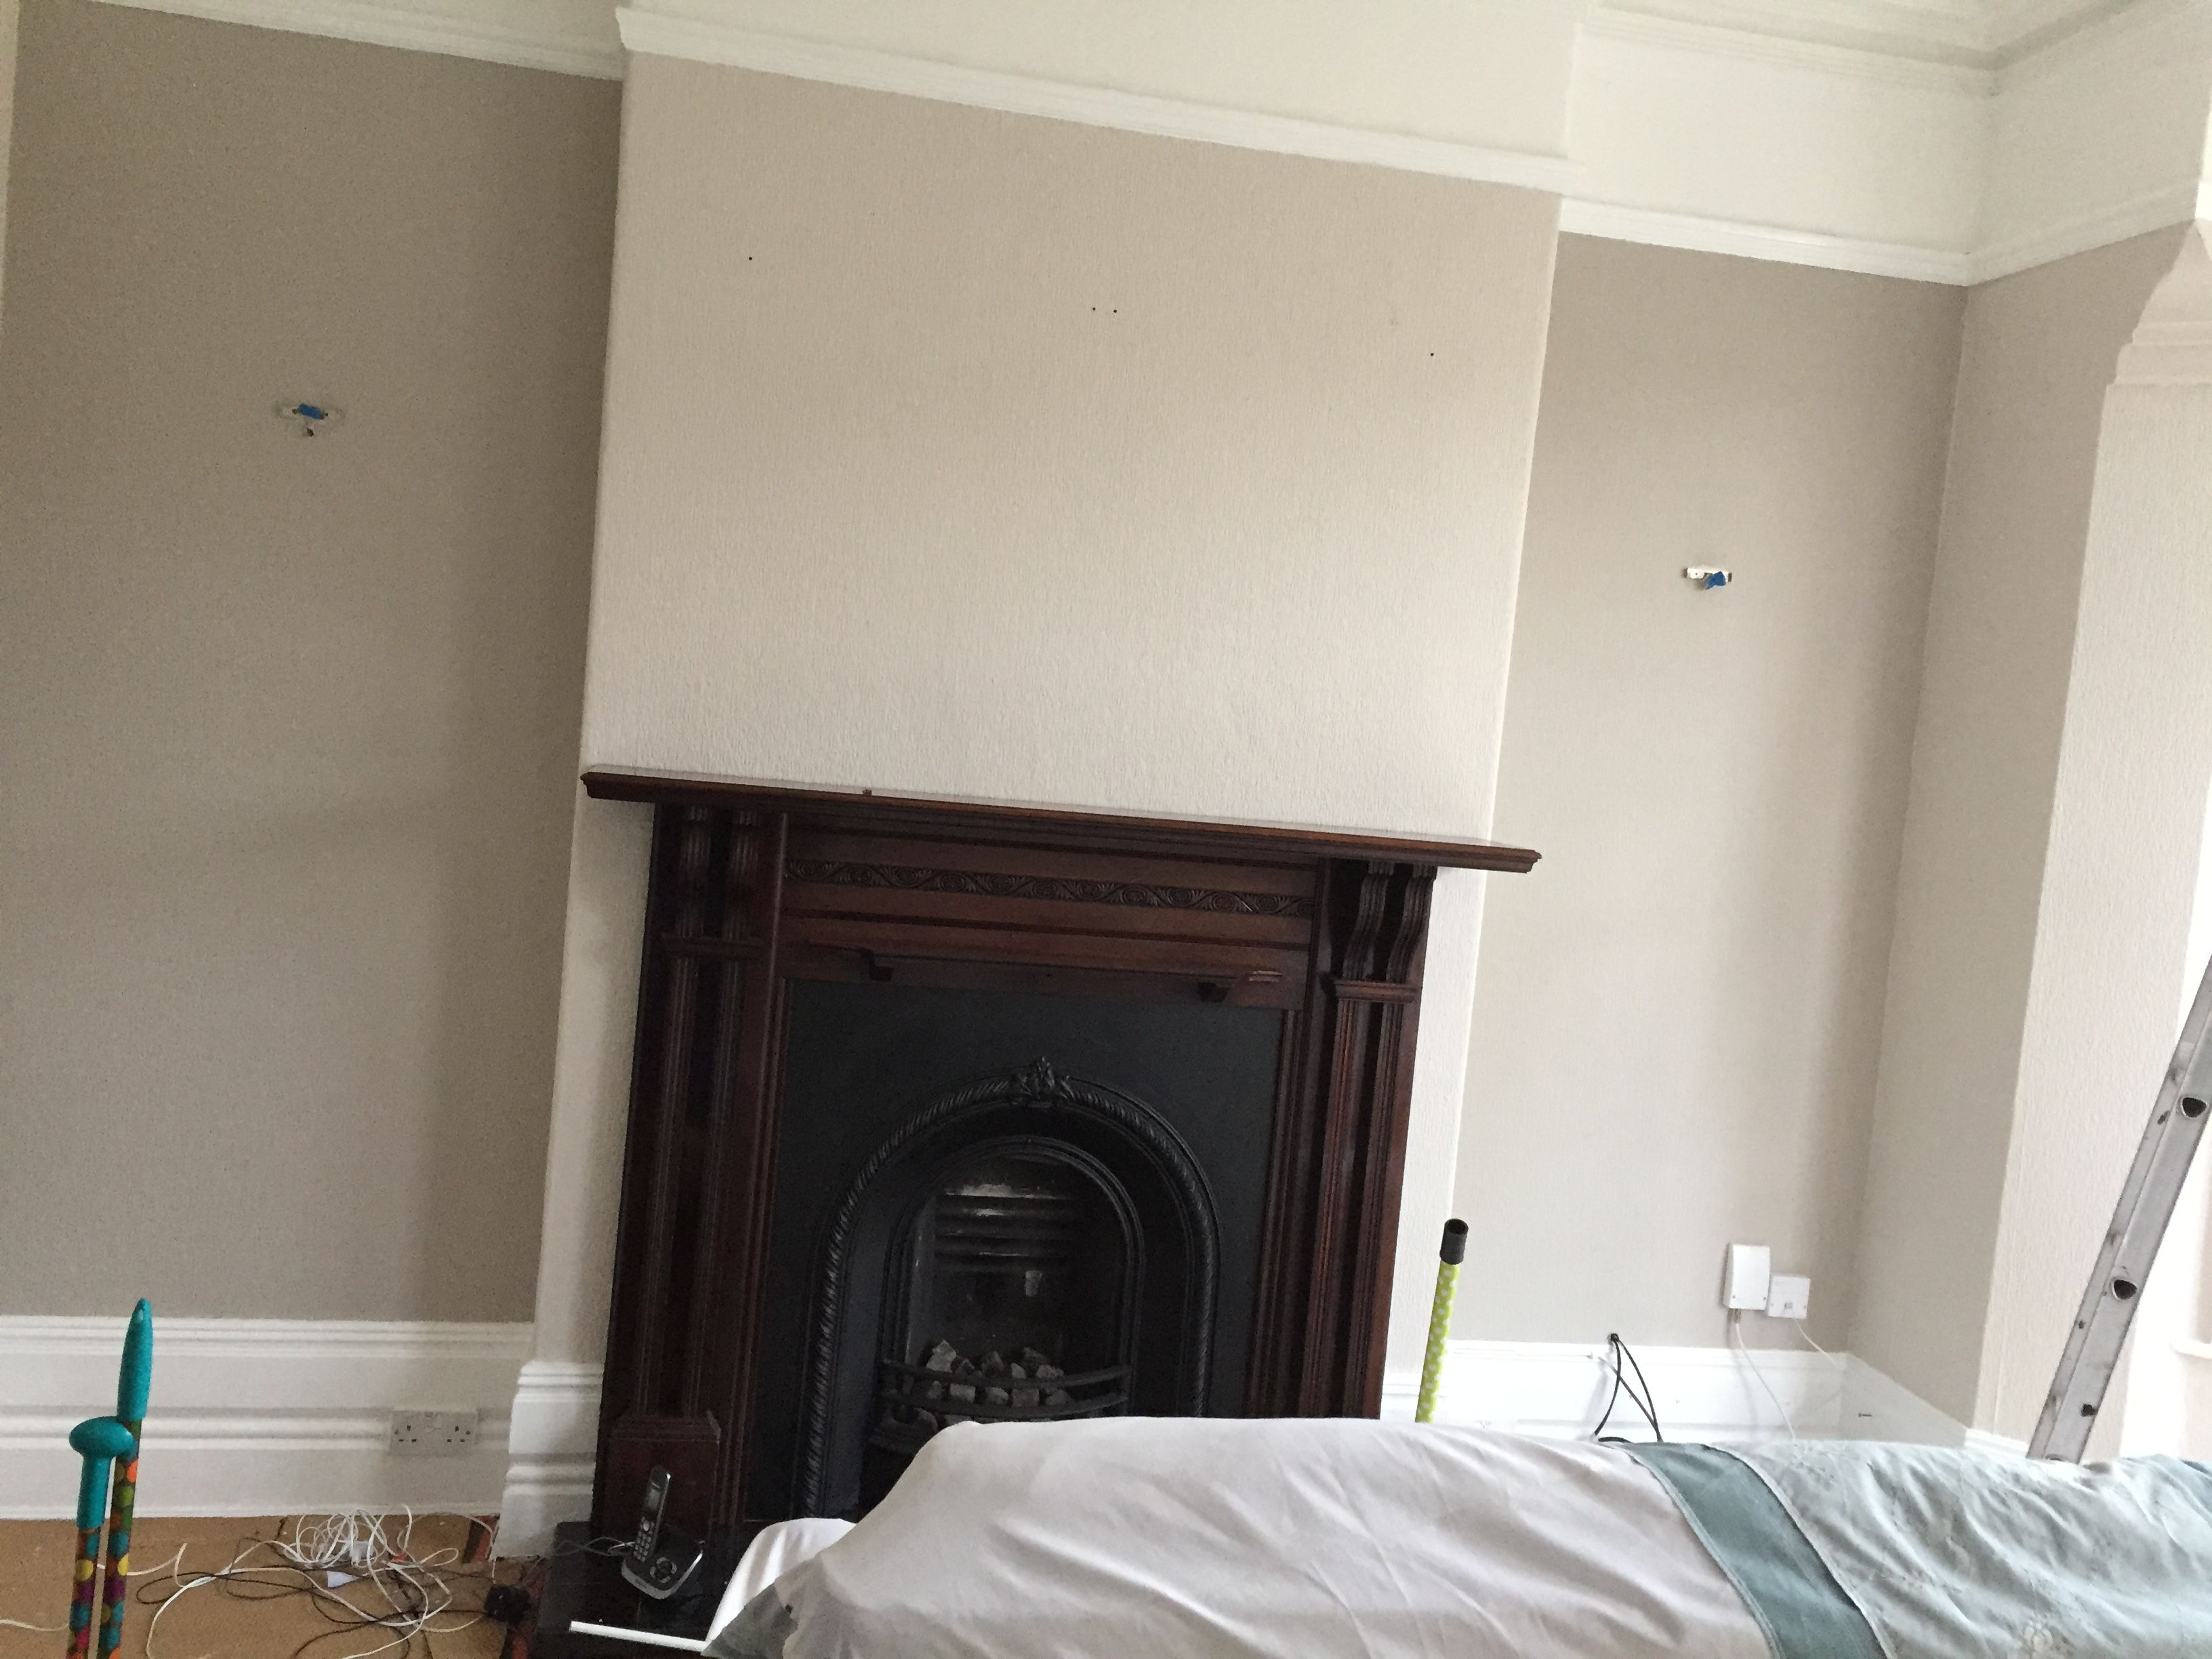 Farrow ball walls skimming stone alcoves Farrow and ball skimming stone living room